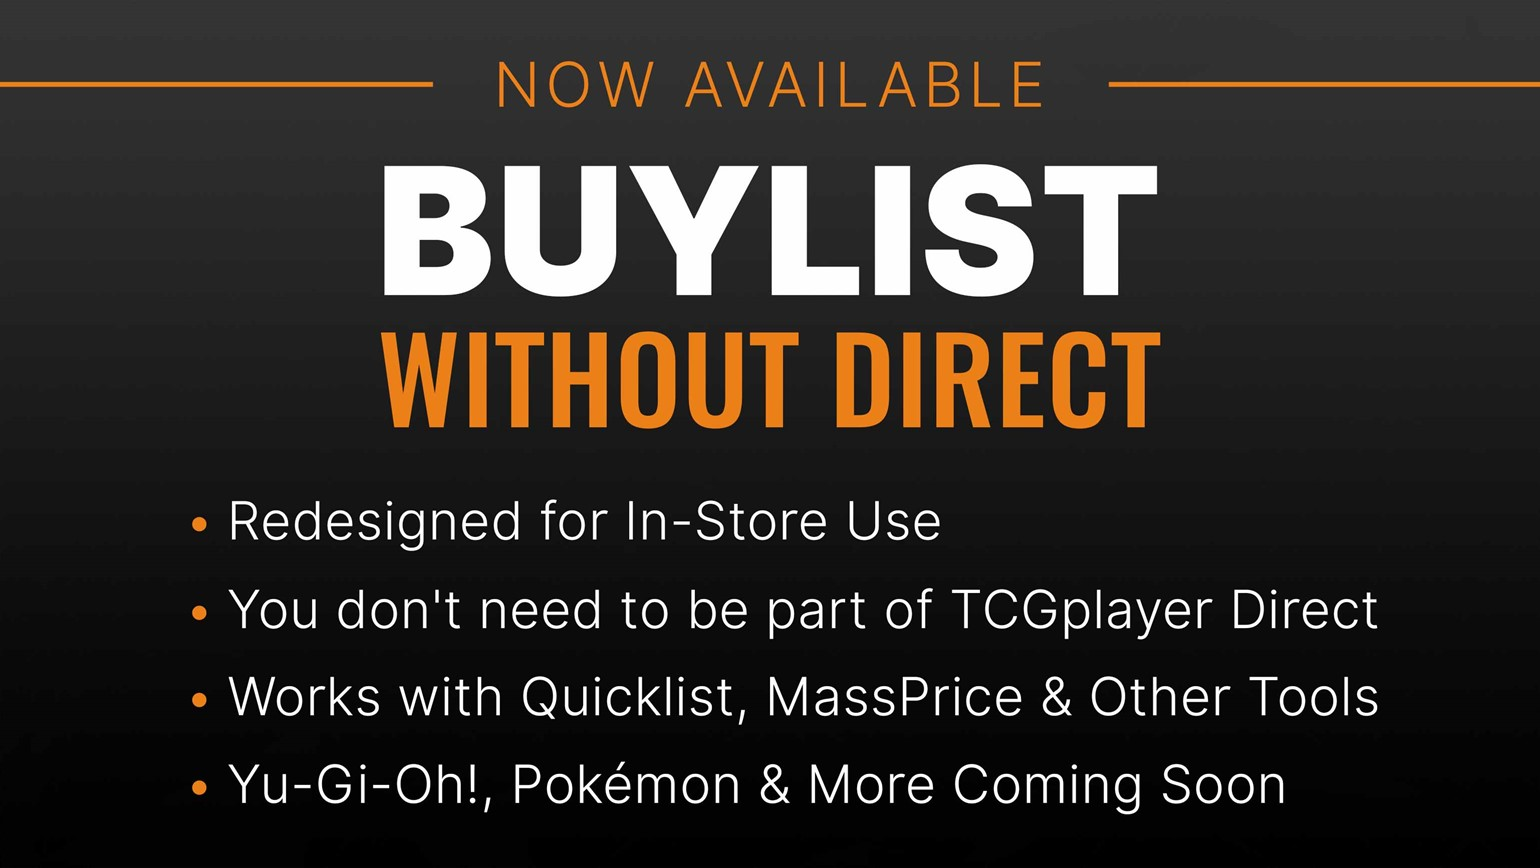 Buylist Without Direct Available for All Pro Sellers to Restock Inventory & Grow Profits